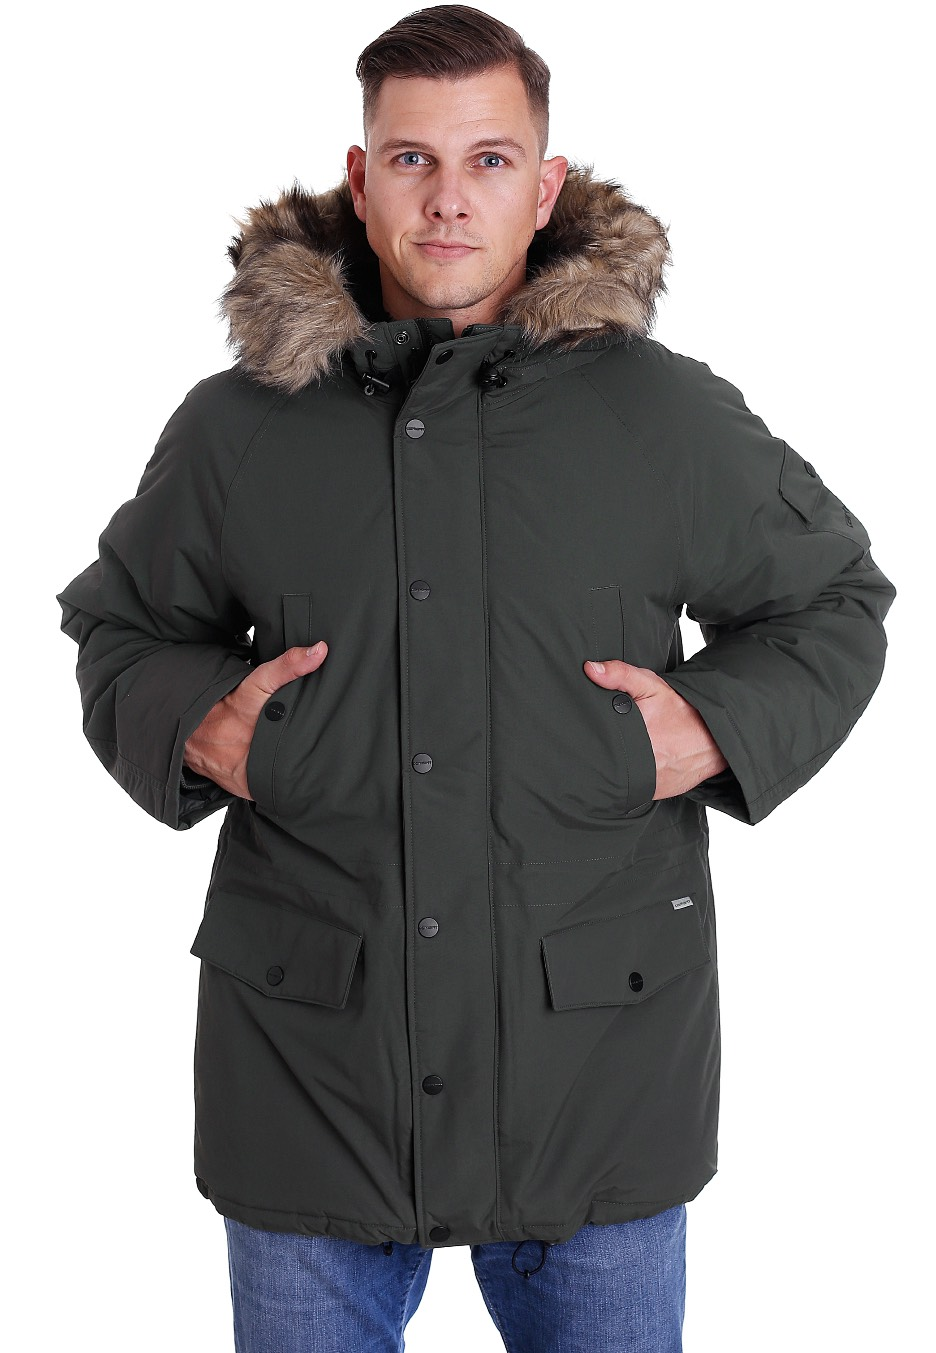 Carhartt anchorage parka medium